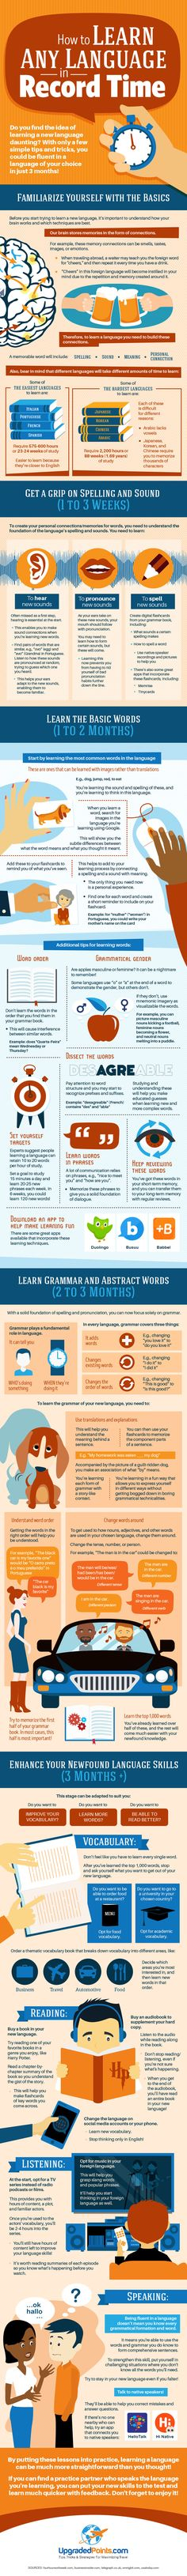 How To Learn Any Language In Record Time Infographic - http://elearninginfographics.com/learn-any-language-in-record-time-infographic/